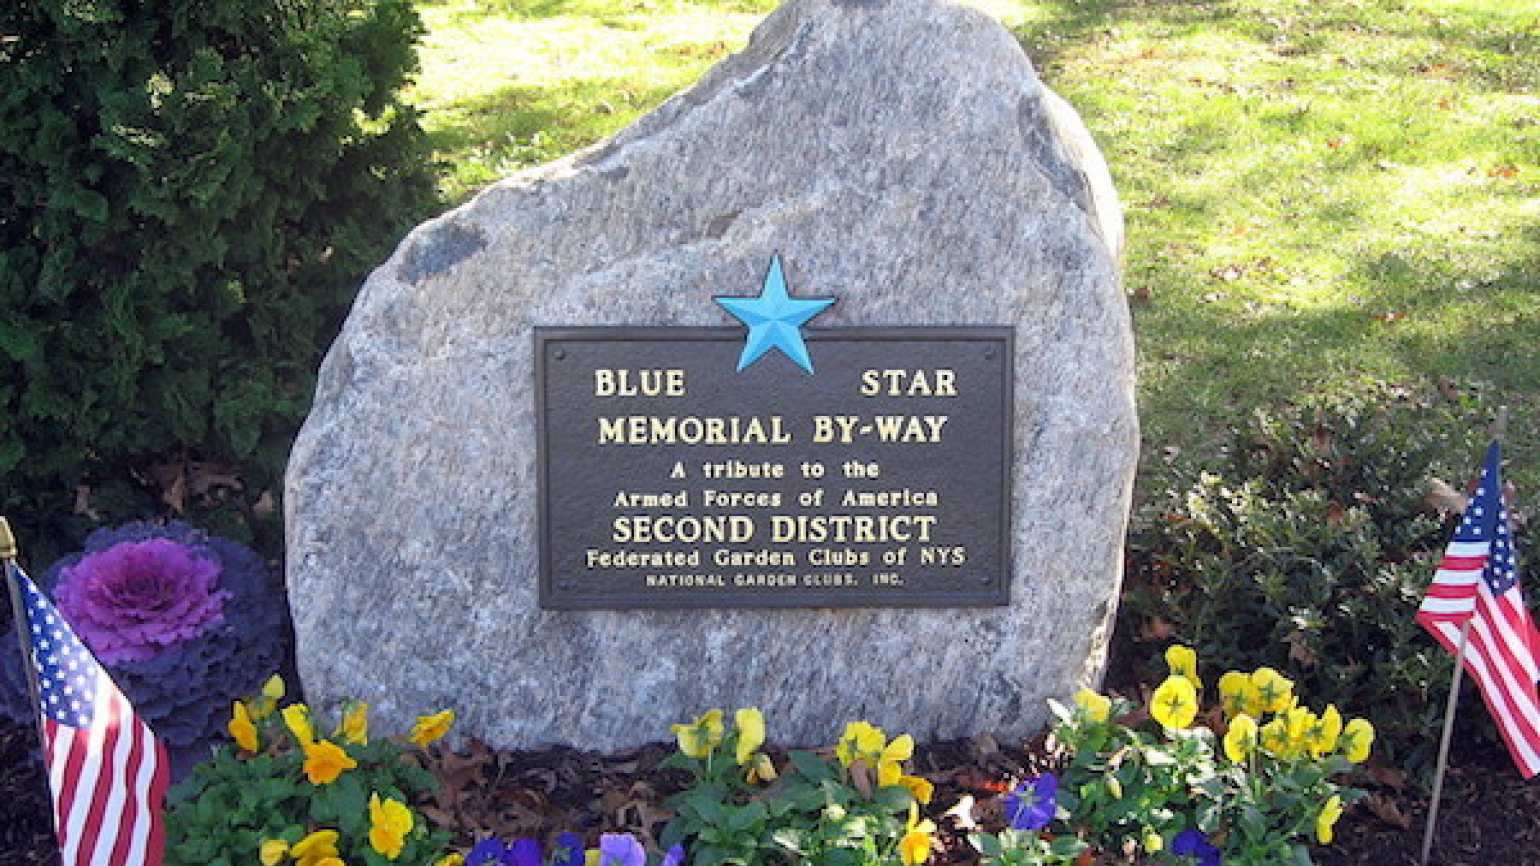 A Blue Star road marker in Long Island, NY.